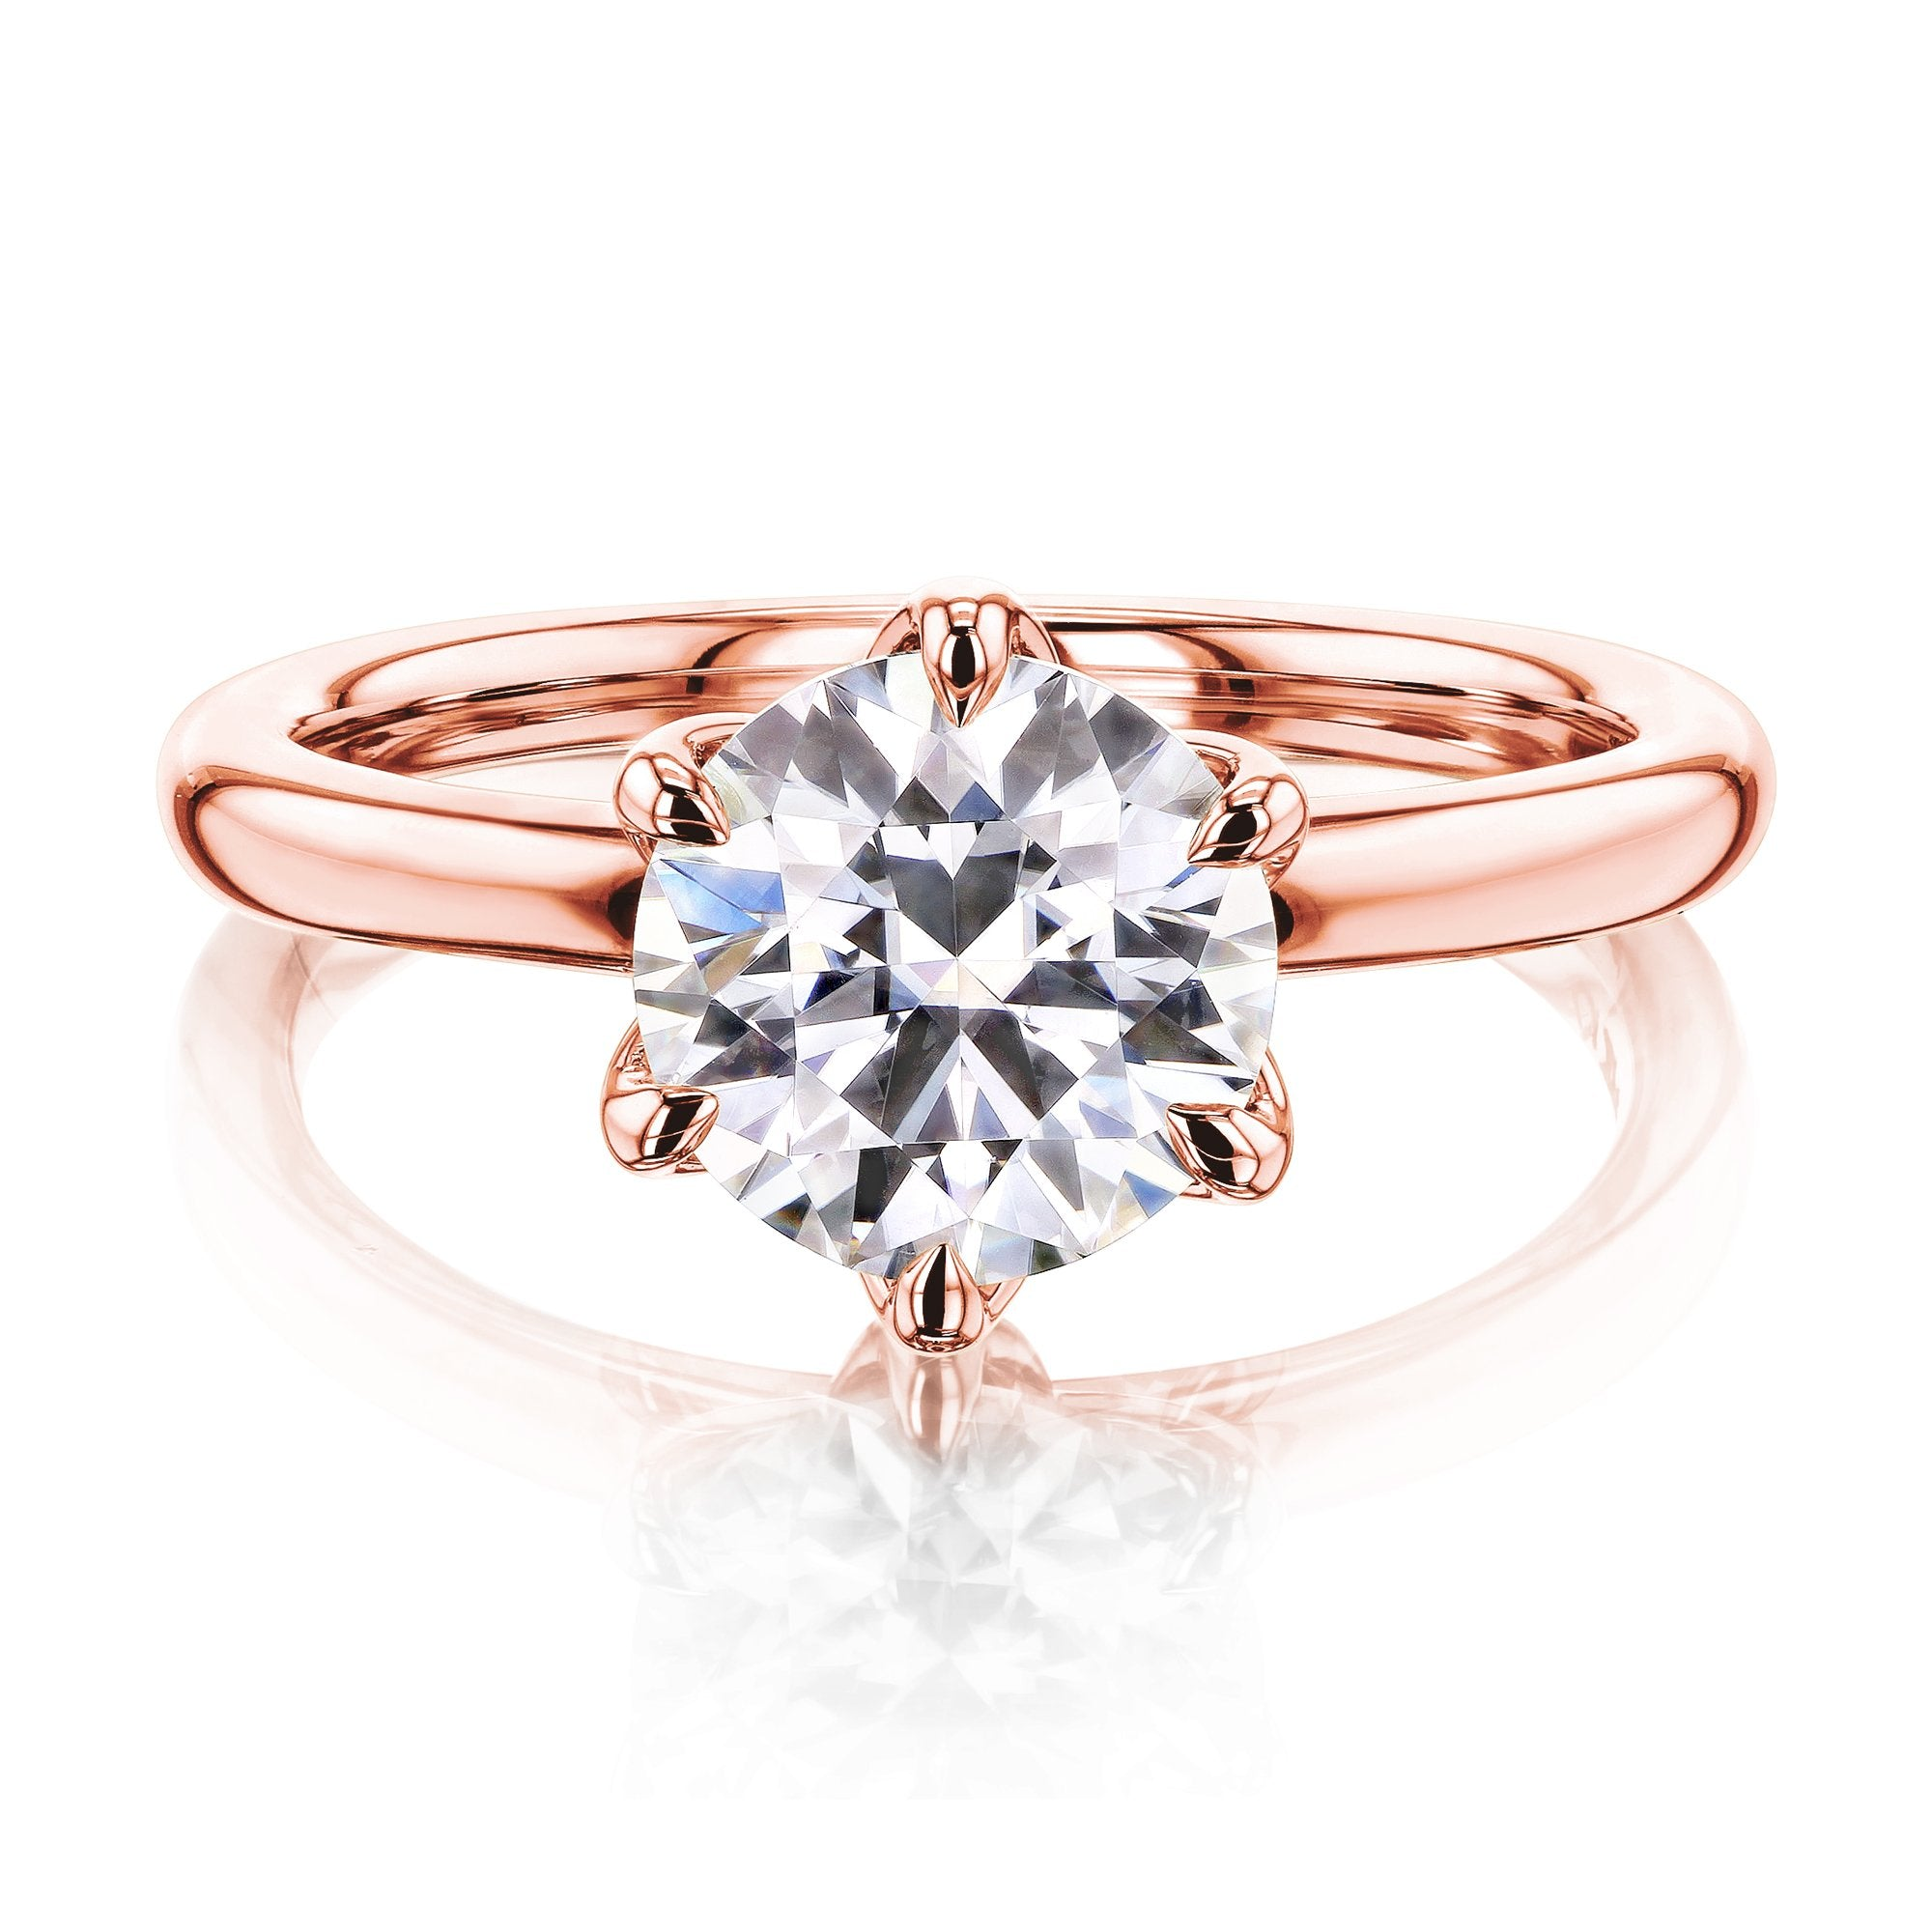 Compare 1.5ct Round Forever One Floating Tulip Comfort Fit - rose-gold 5.0